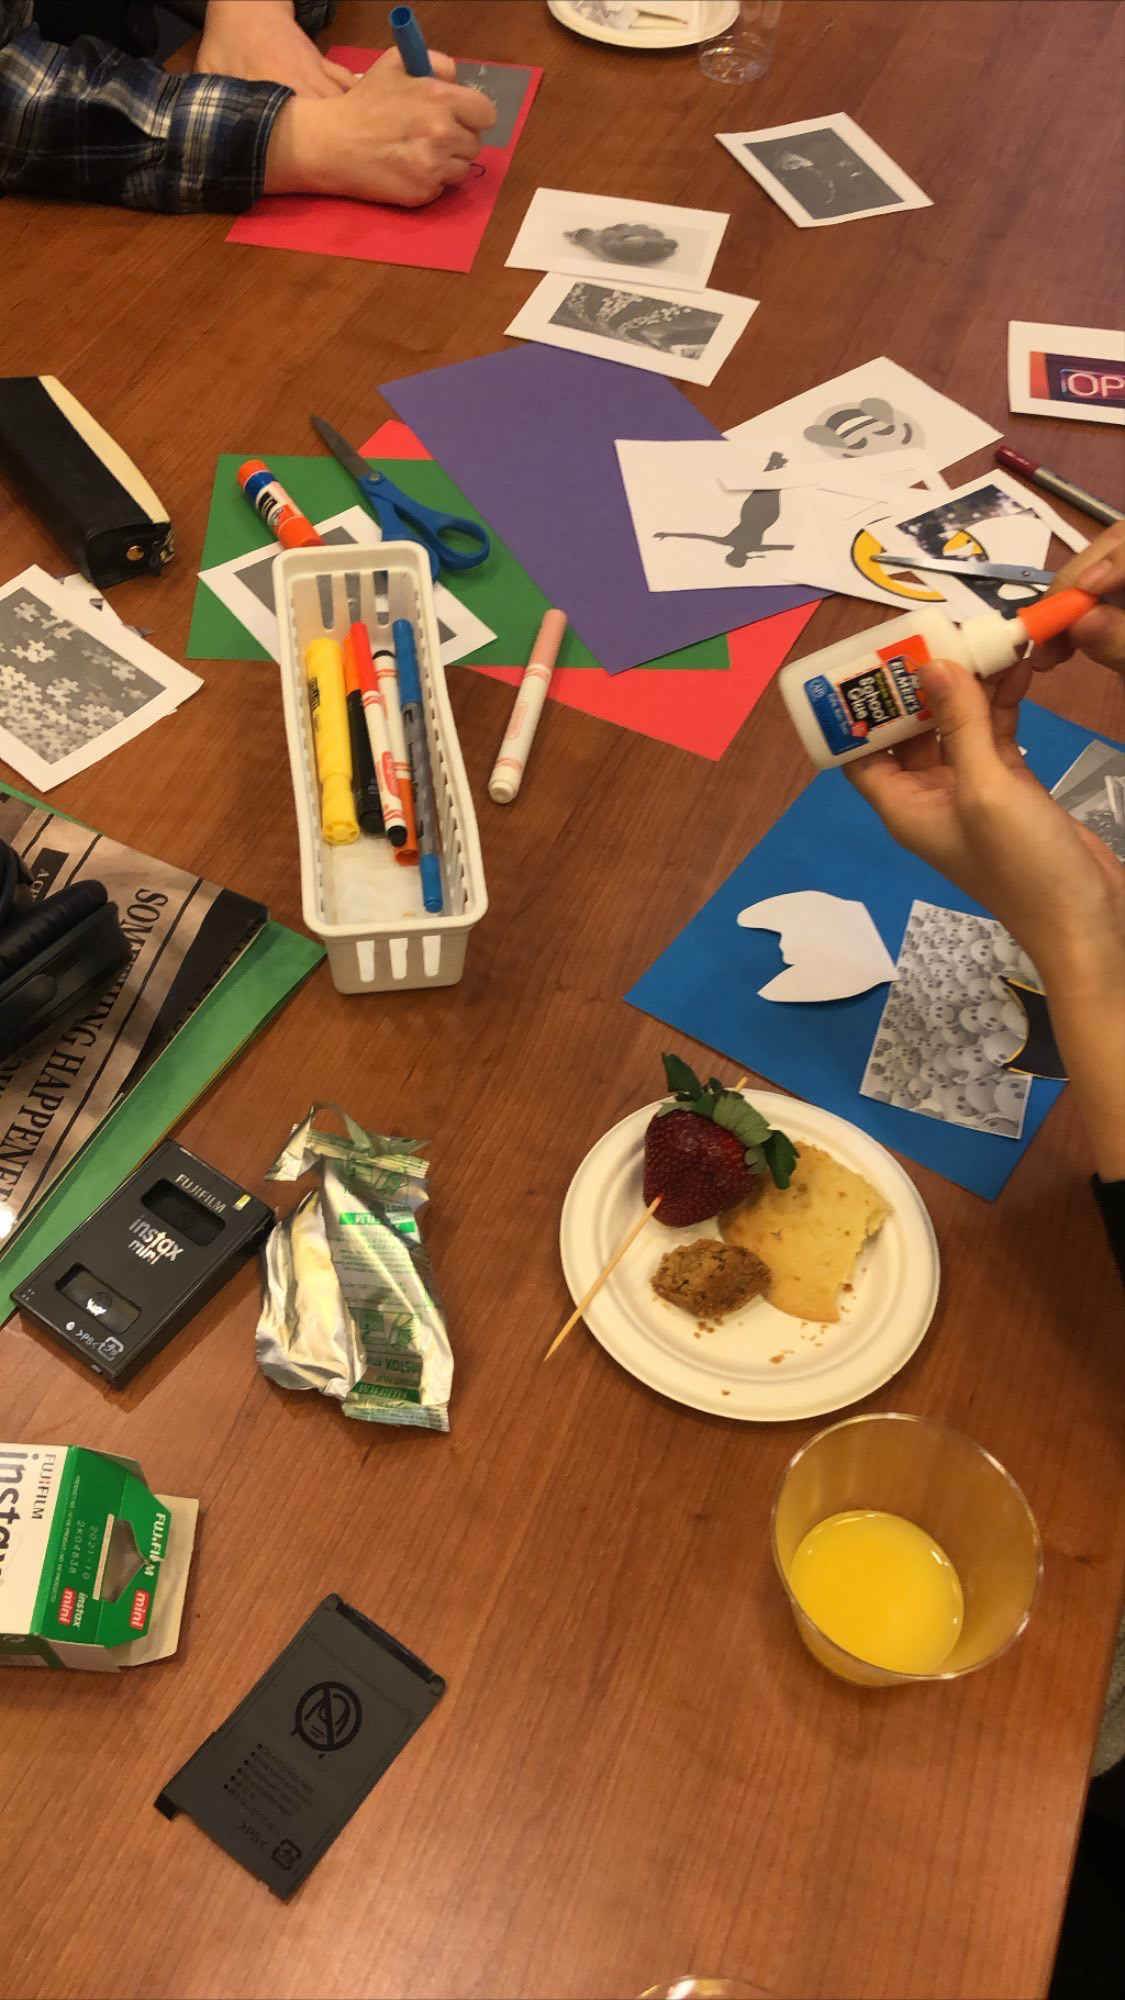 birds eye view of a table with construction paper, glue, markers. There is a glass of orange juice and plate with fruit alongside two sets of hands working on collaging.